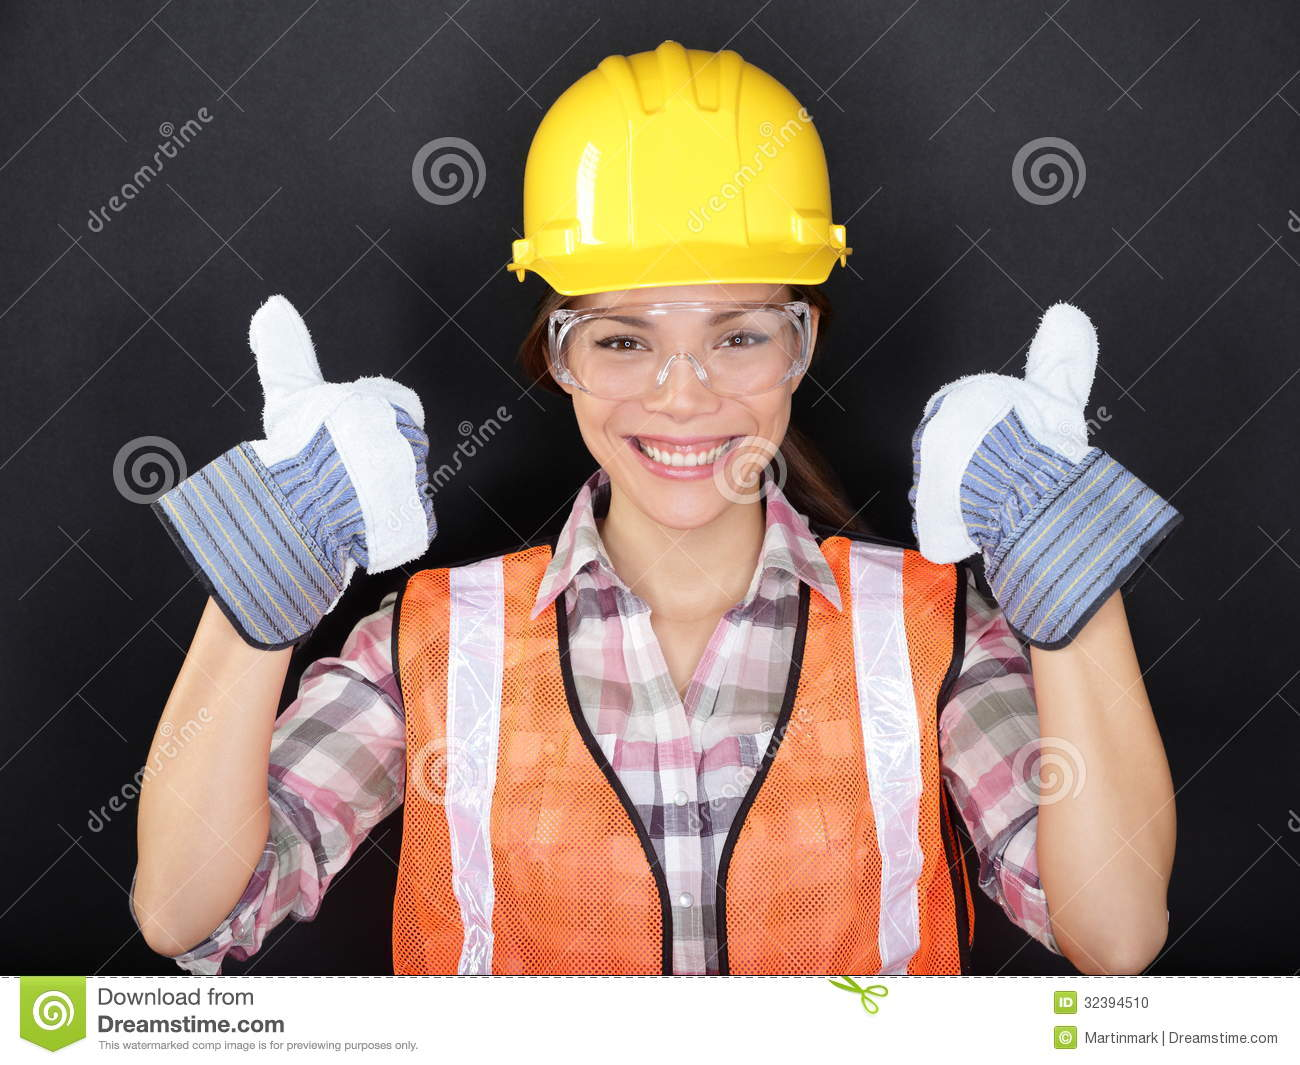 construction-worker-thumbs-up-happy-woman-portrait-doing-protection-wear-young-wearing-safety-glasses-vest-yellow-hard-32394510.jpg